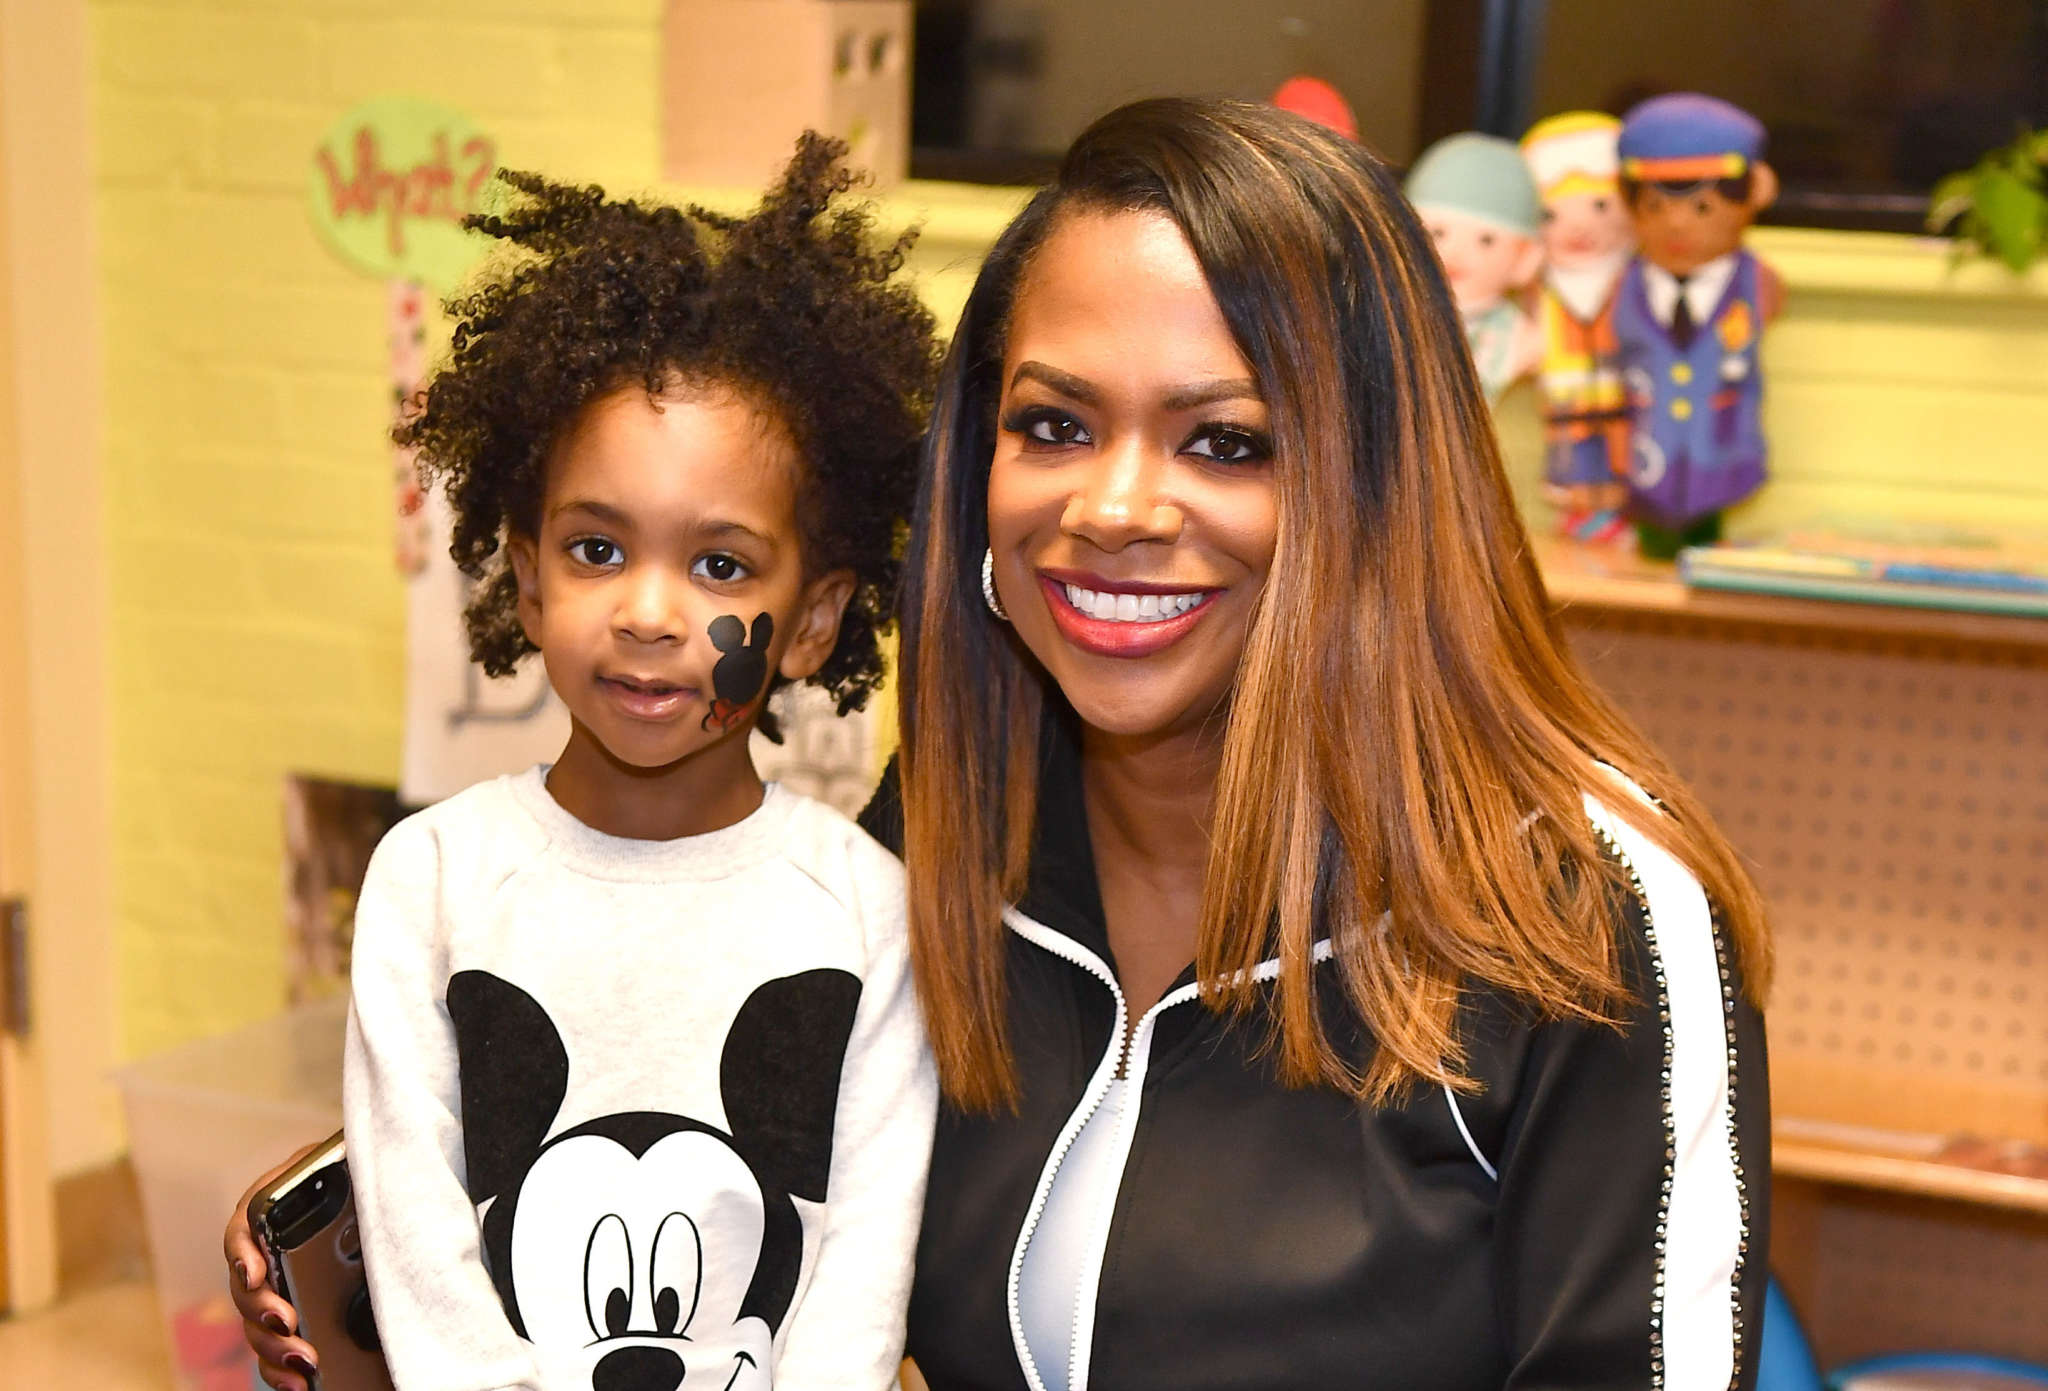 Kandi Burruss' Latest Video With Ace Wells Tucker Has Fans Saying That The Boy Is Twinning With Riley Burruss